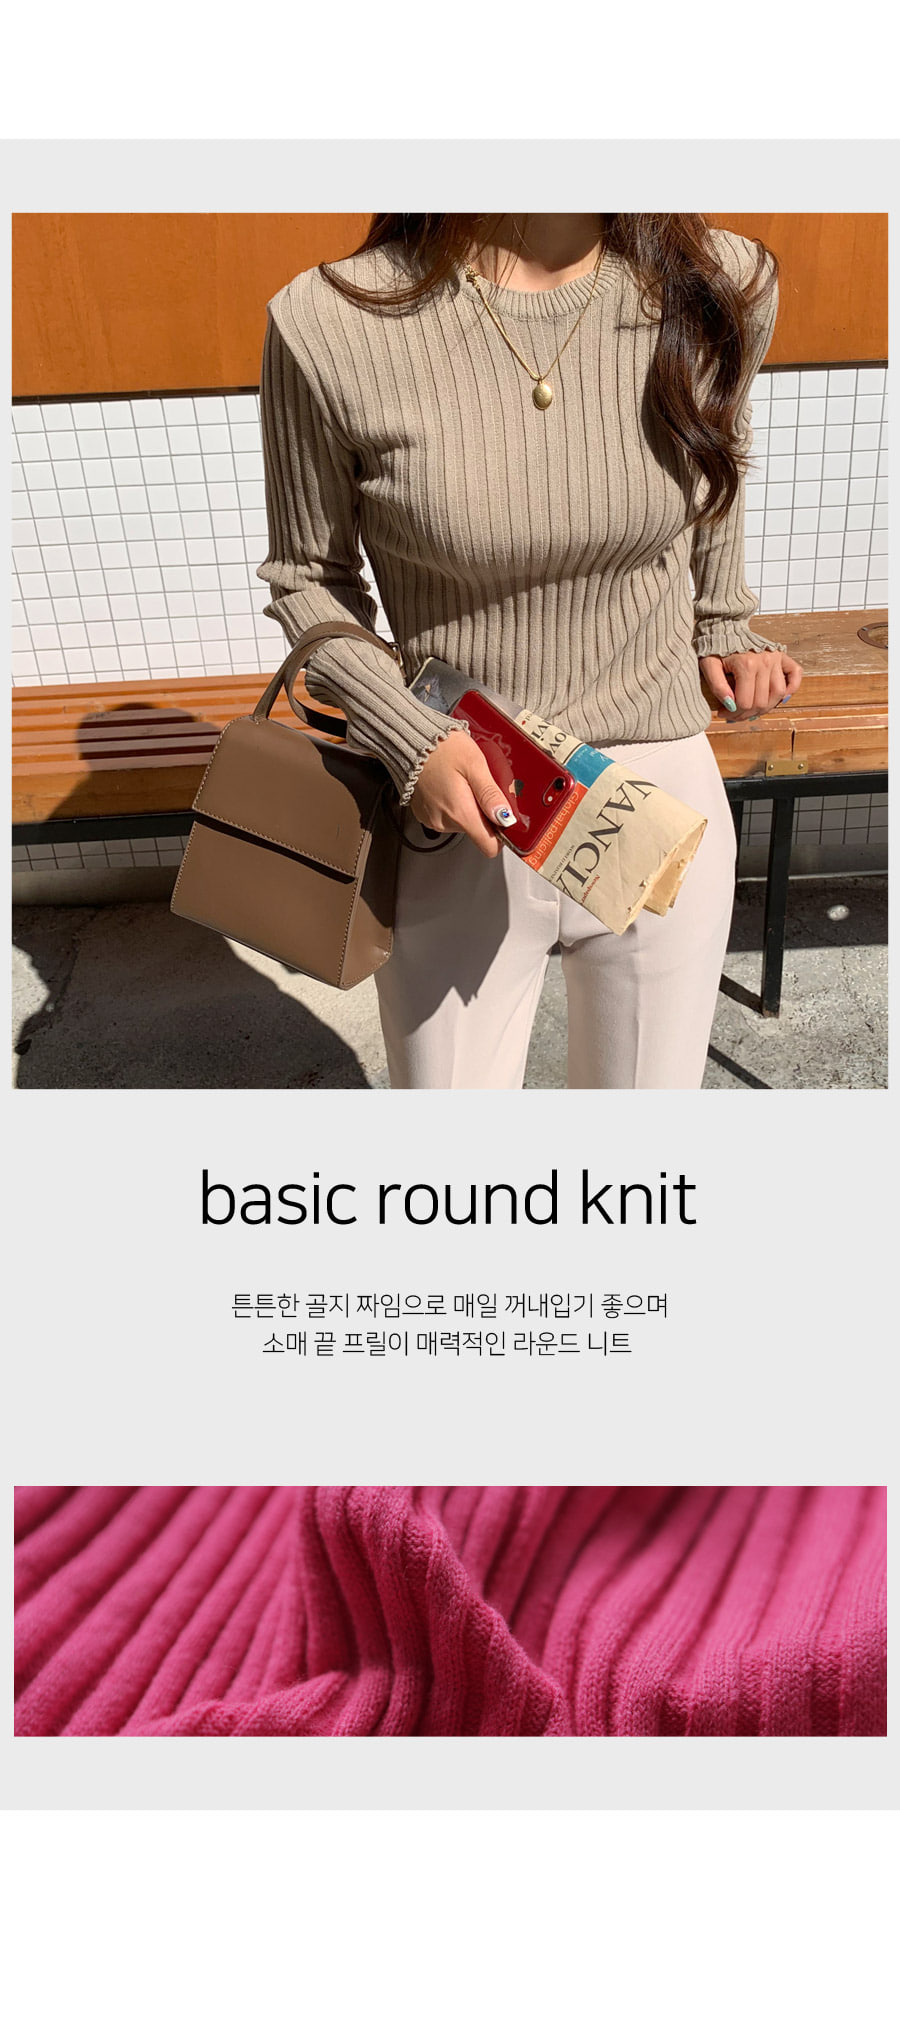 Nut Basic Corrugated Round Knit